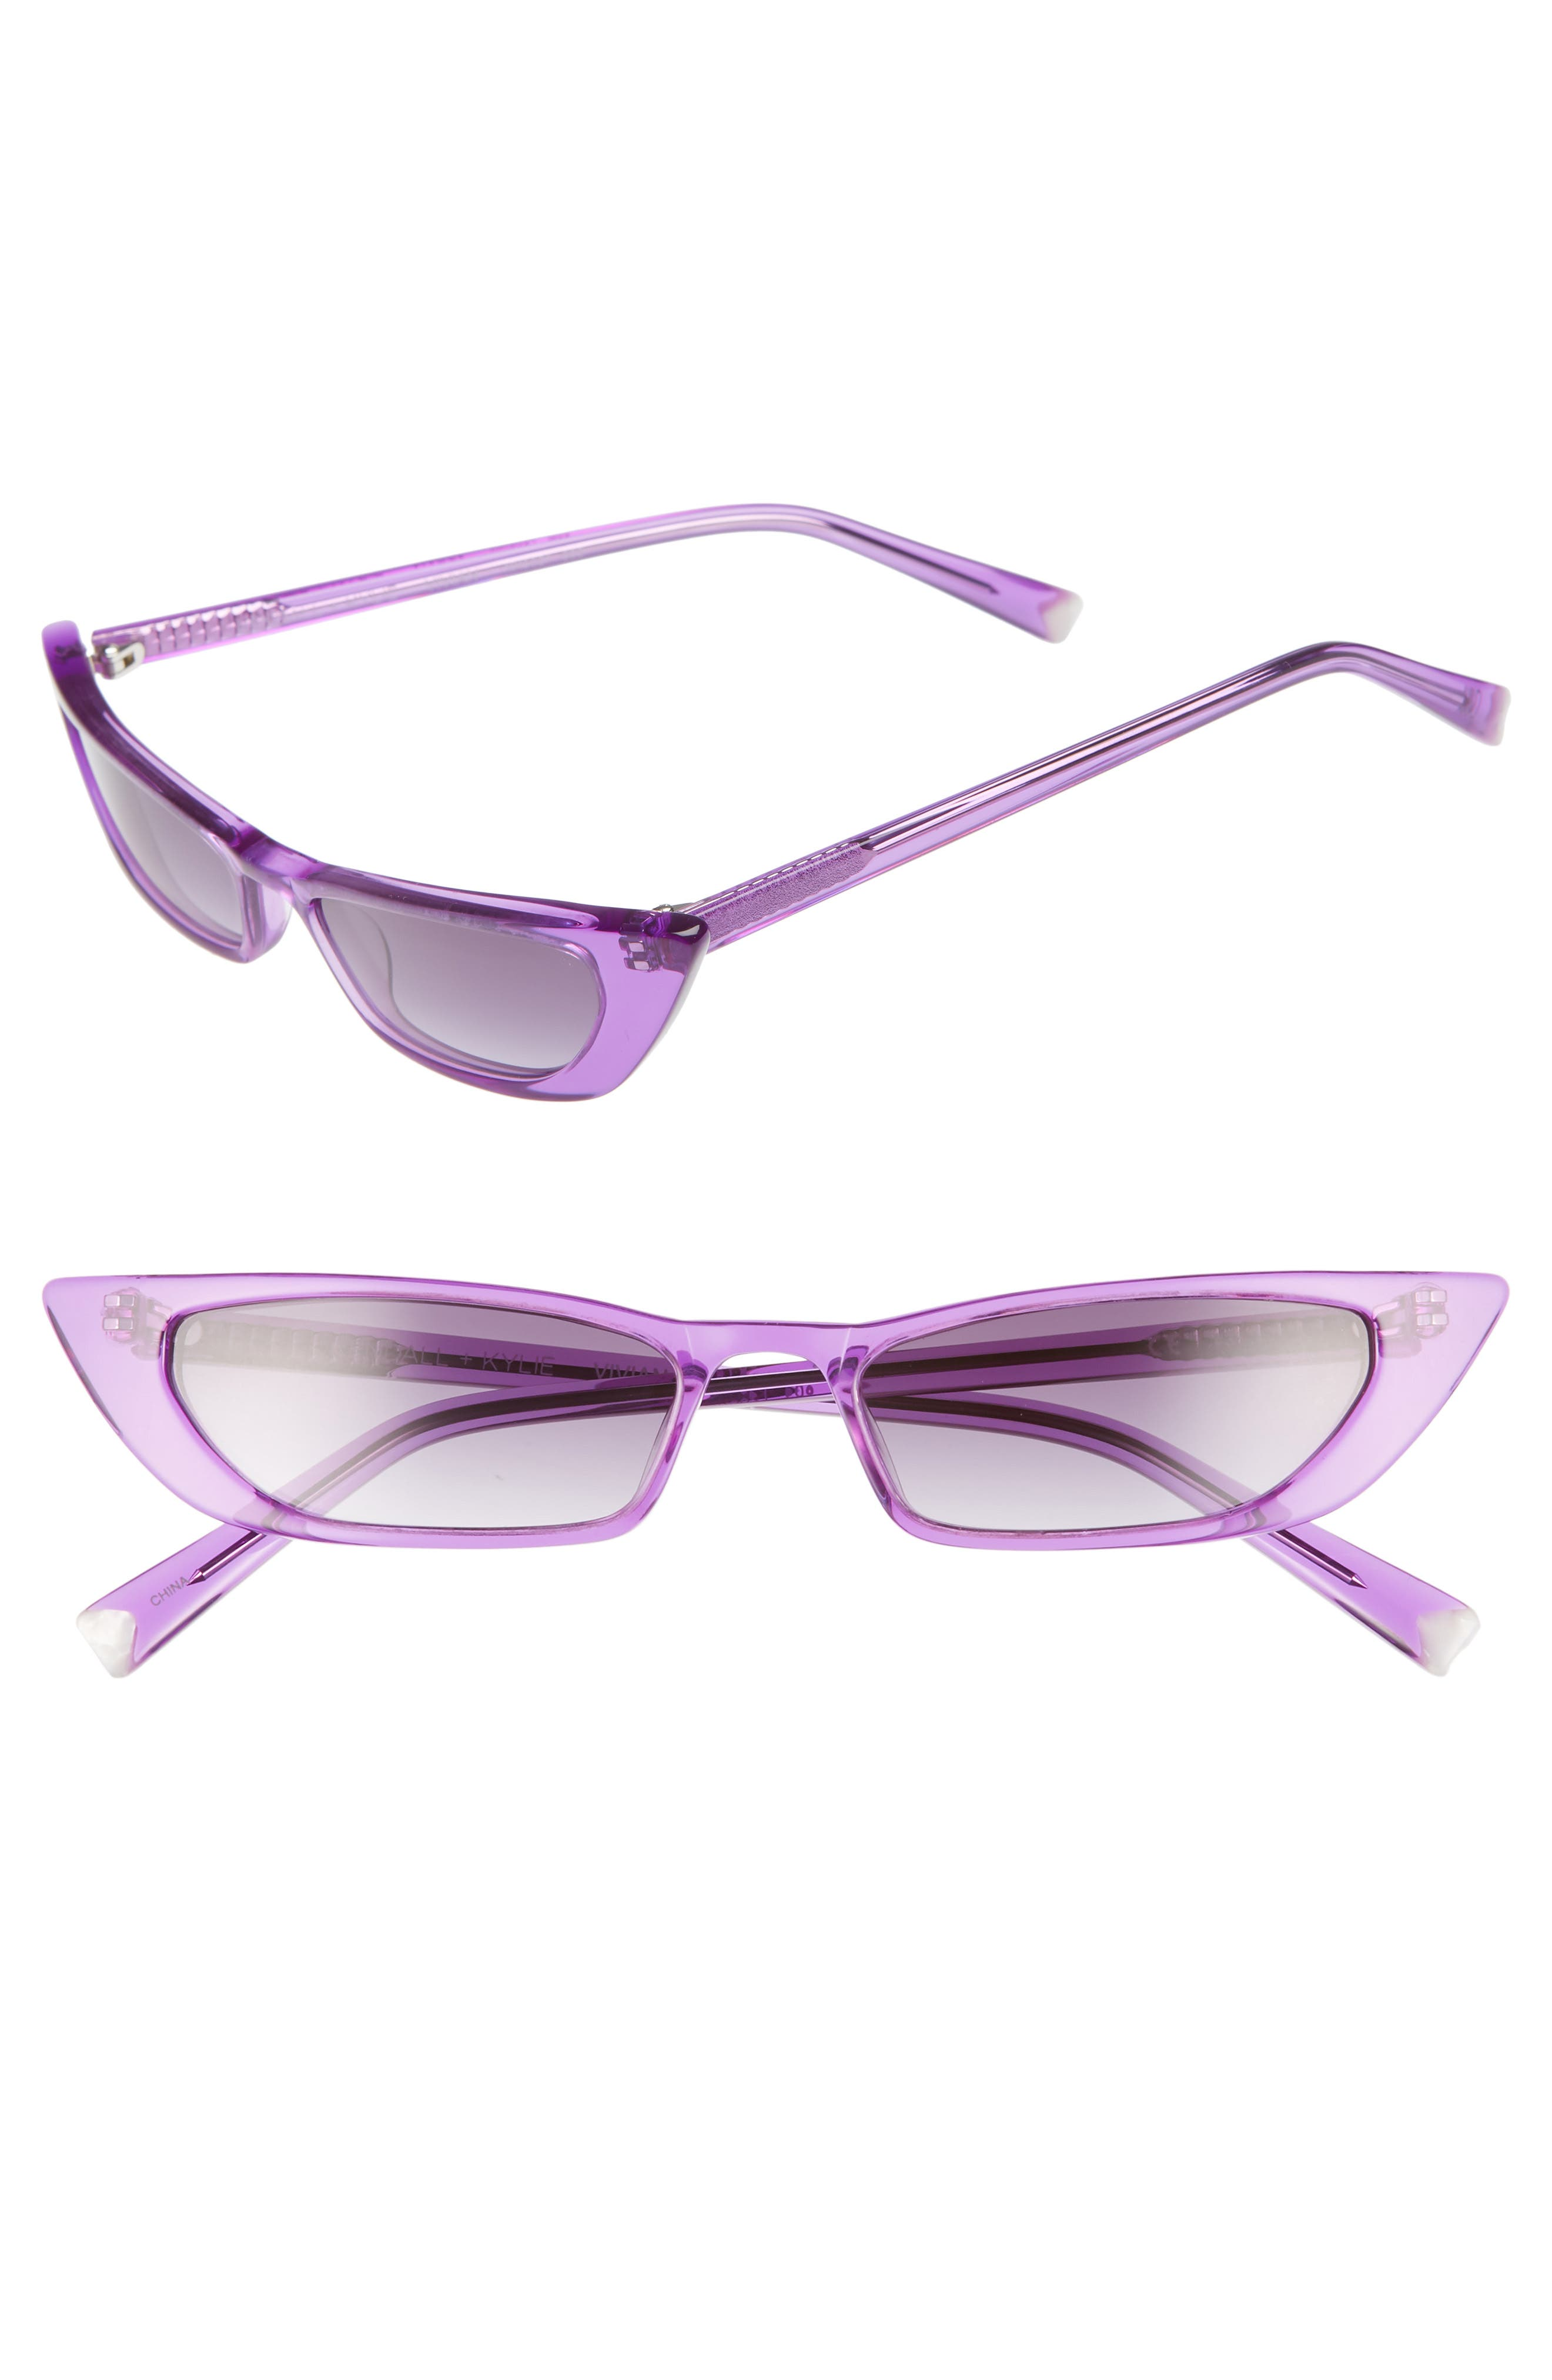 KENDALL AND KYLIE Vivian 51Mm Extreme Cat Eye Sunglasses - Crystal Purple